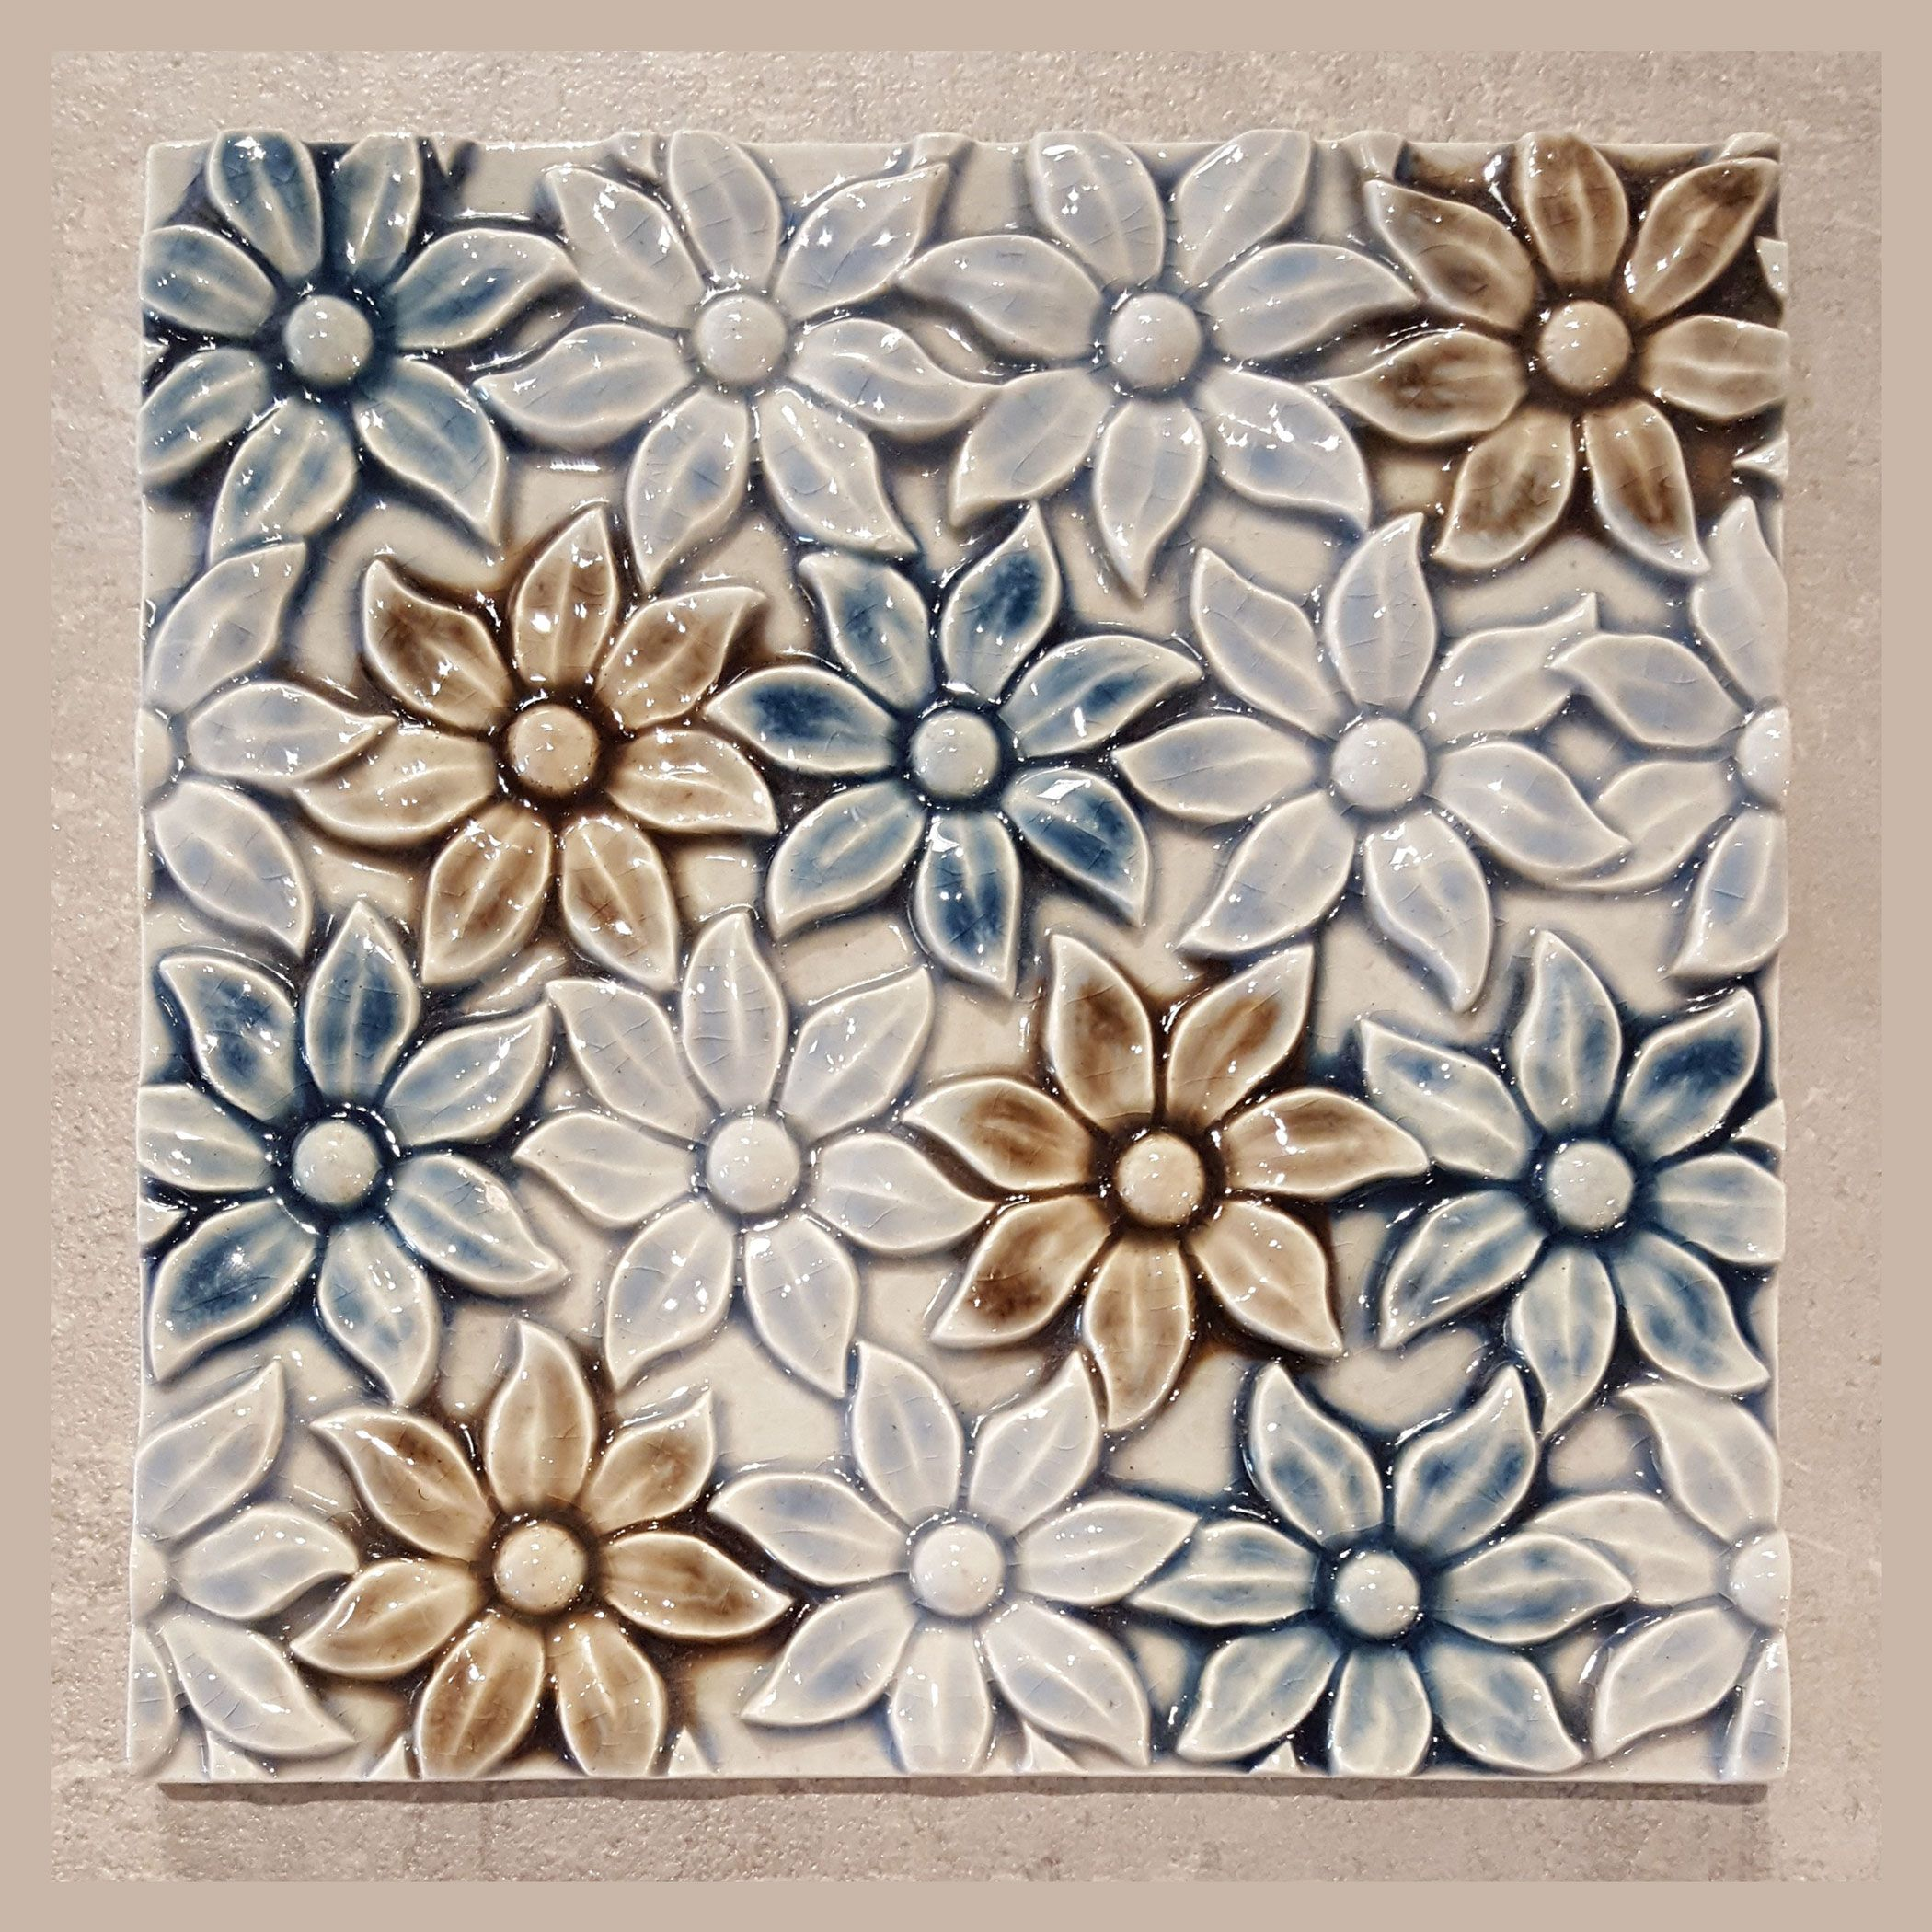 One more beautiful piece from quemere international hand painted one more beautiful piece from quemere international hand painted ceramic tiles pick a design dailygadgetfo Image collections